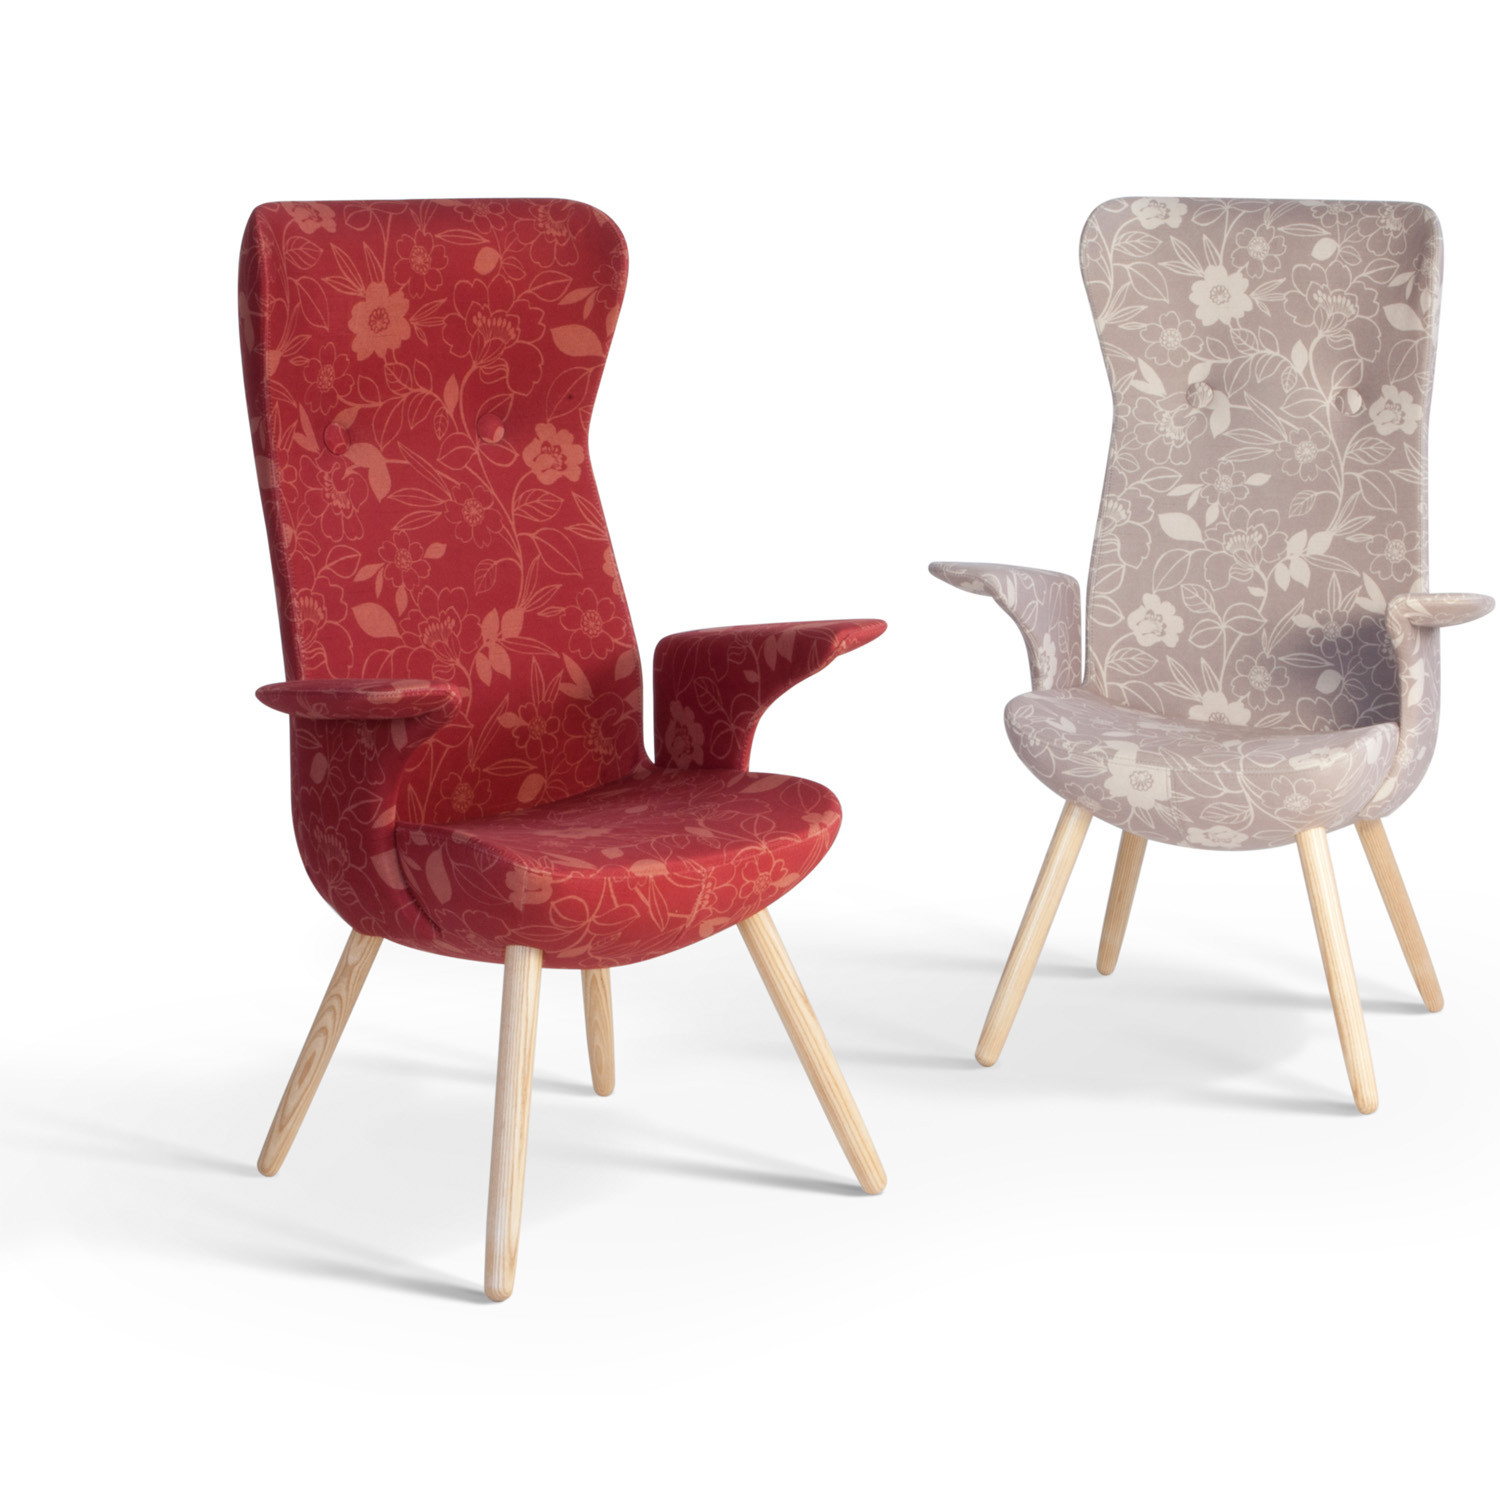 HM82 Armchairs is available in a wide range of fabrics